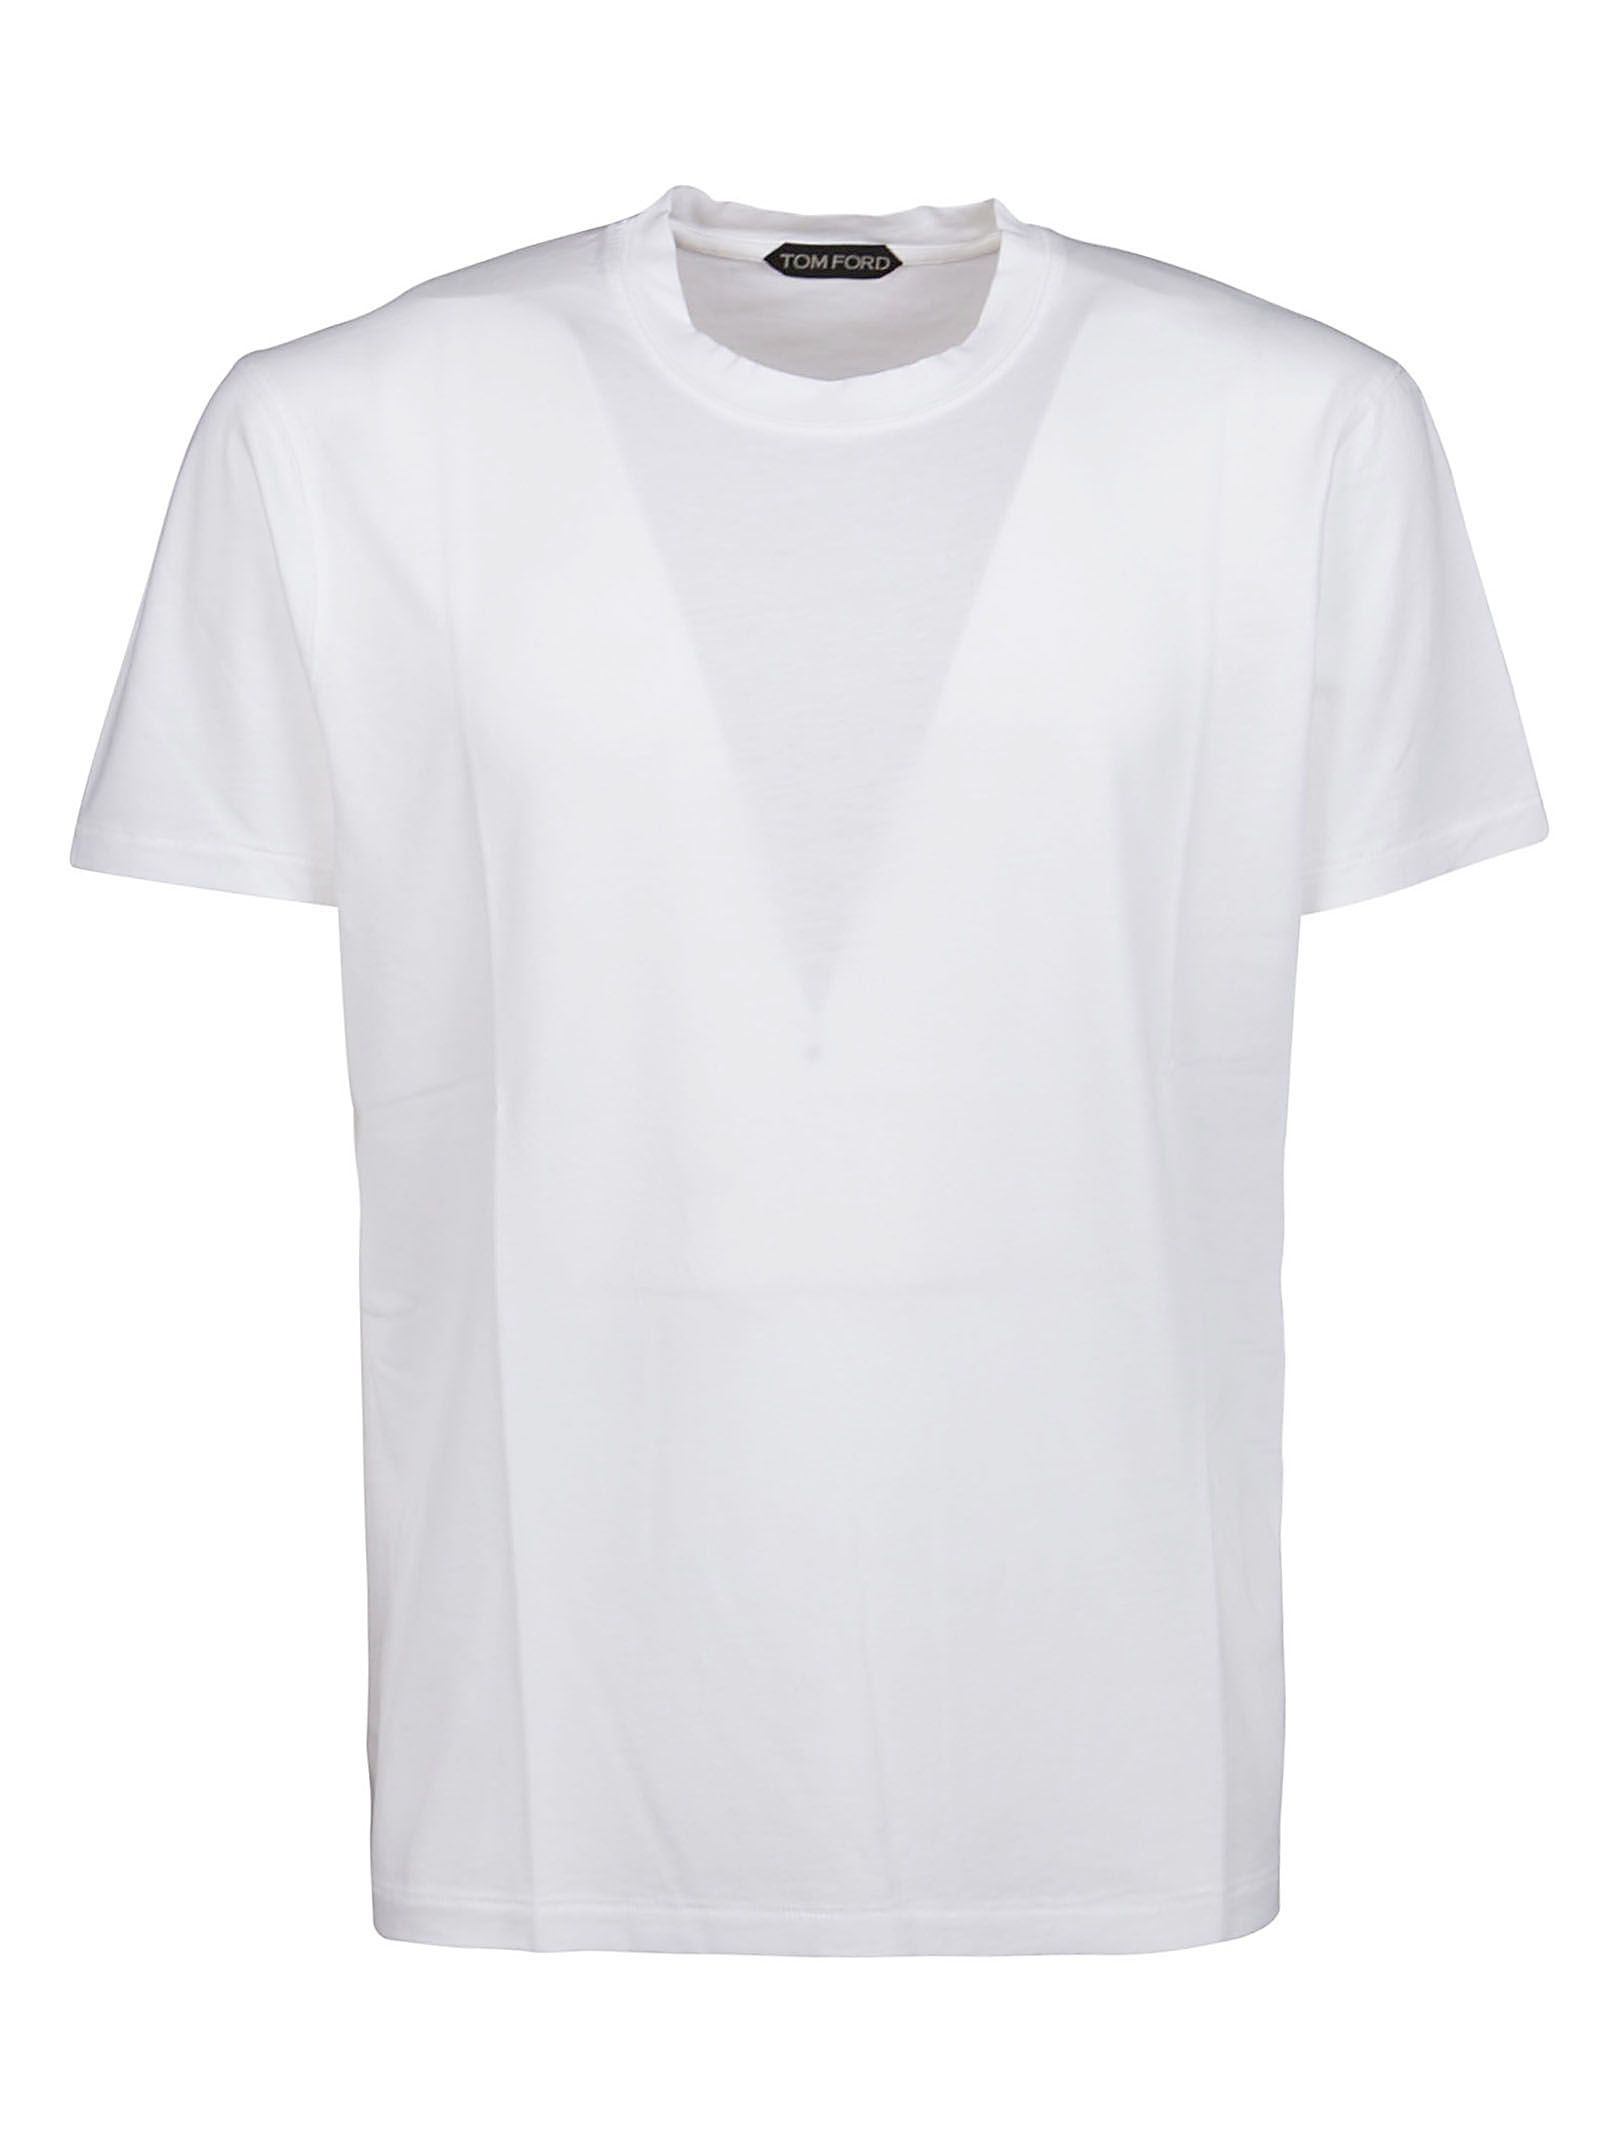 Tom Ford TOM FORD MEN'S WHITE OTHER MATERIALS T-SHIRT